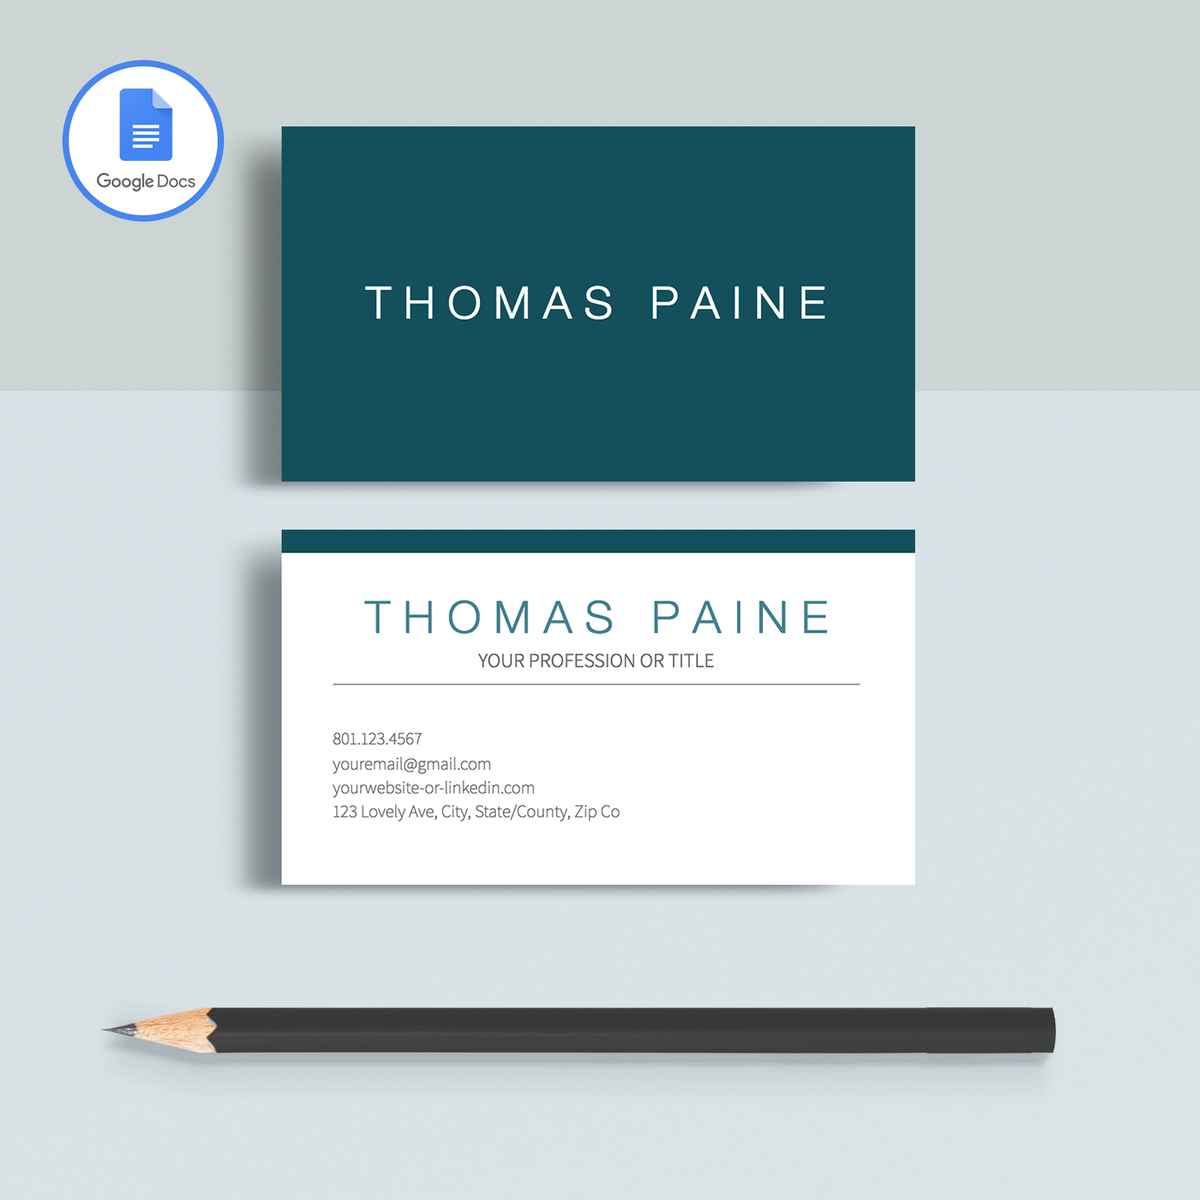 The Thomas Paine Professional Business Cards Template Is Fully A Customizable Using Google Docs